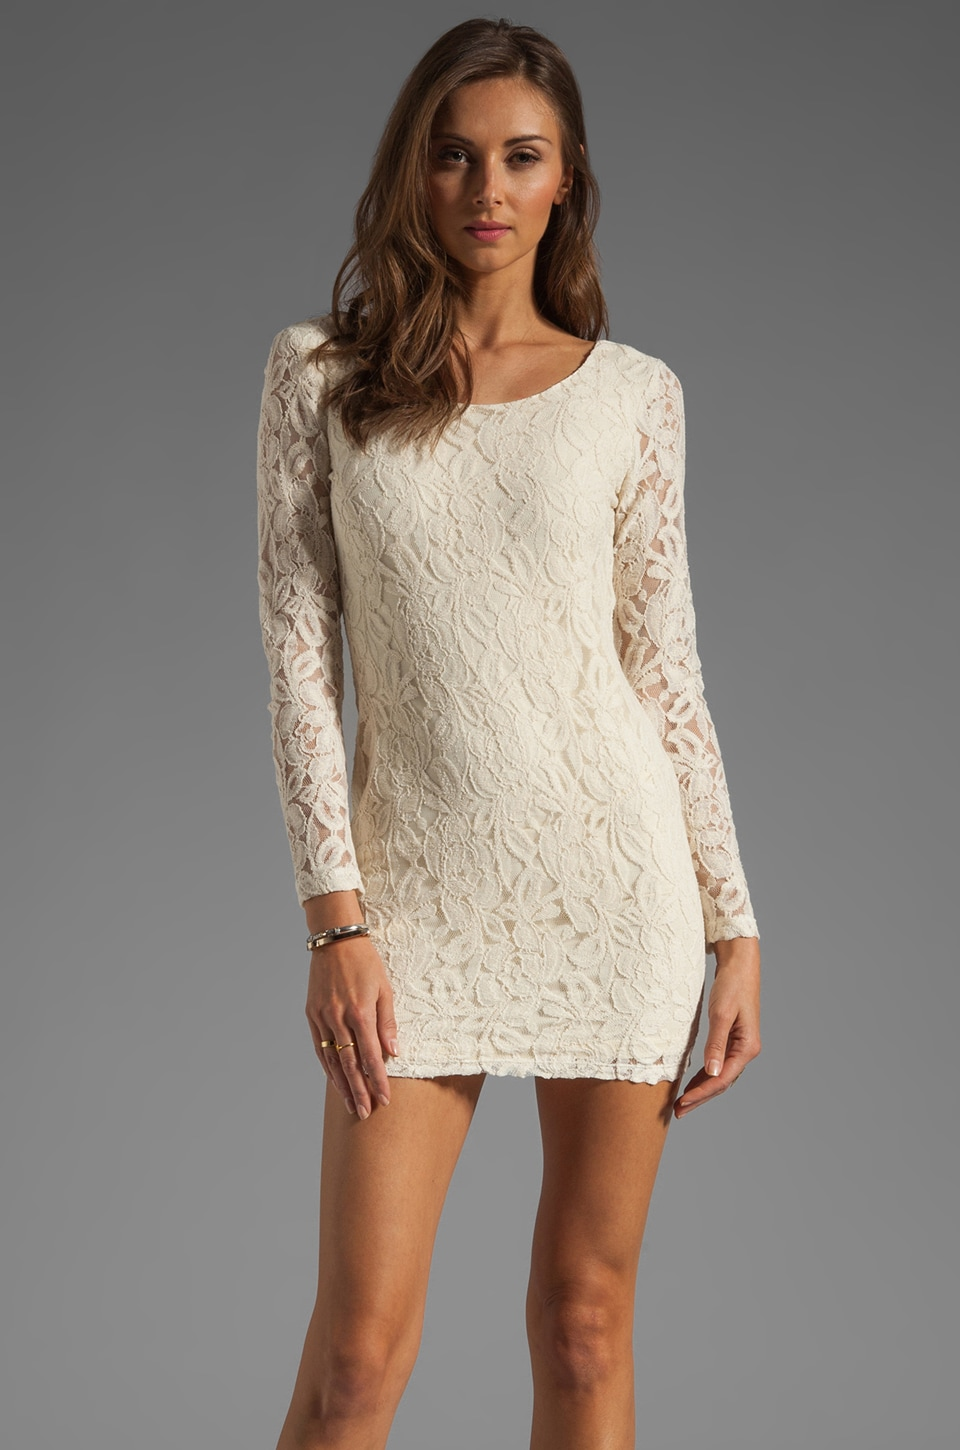 BLAQUE LABEL Long Sleeve Lace Dress in Beige